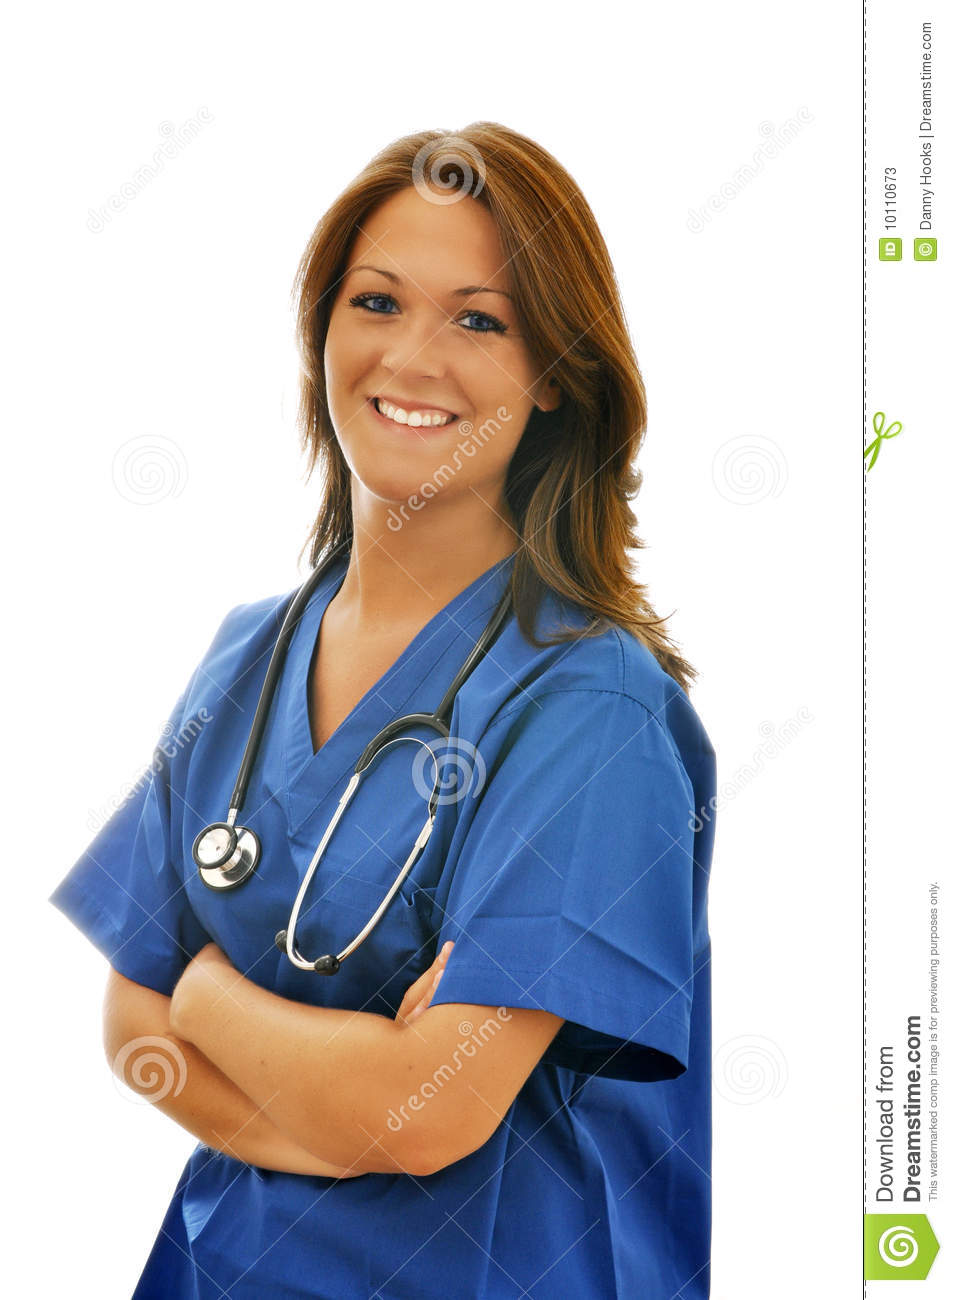 female nurse with stethoscope stock photos image 10110673 firefighter clip art royalty free active firefighter clipart